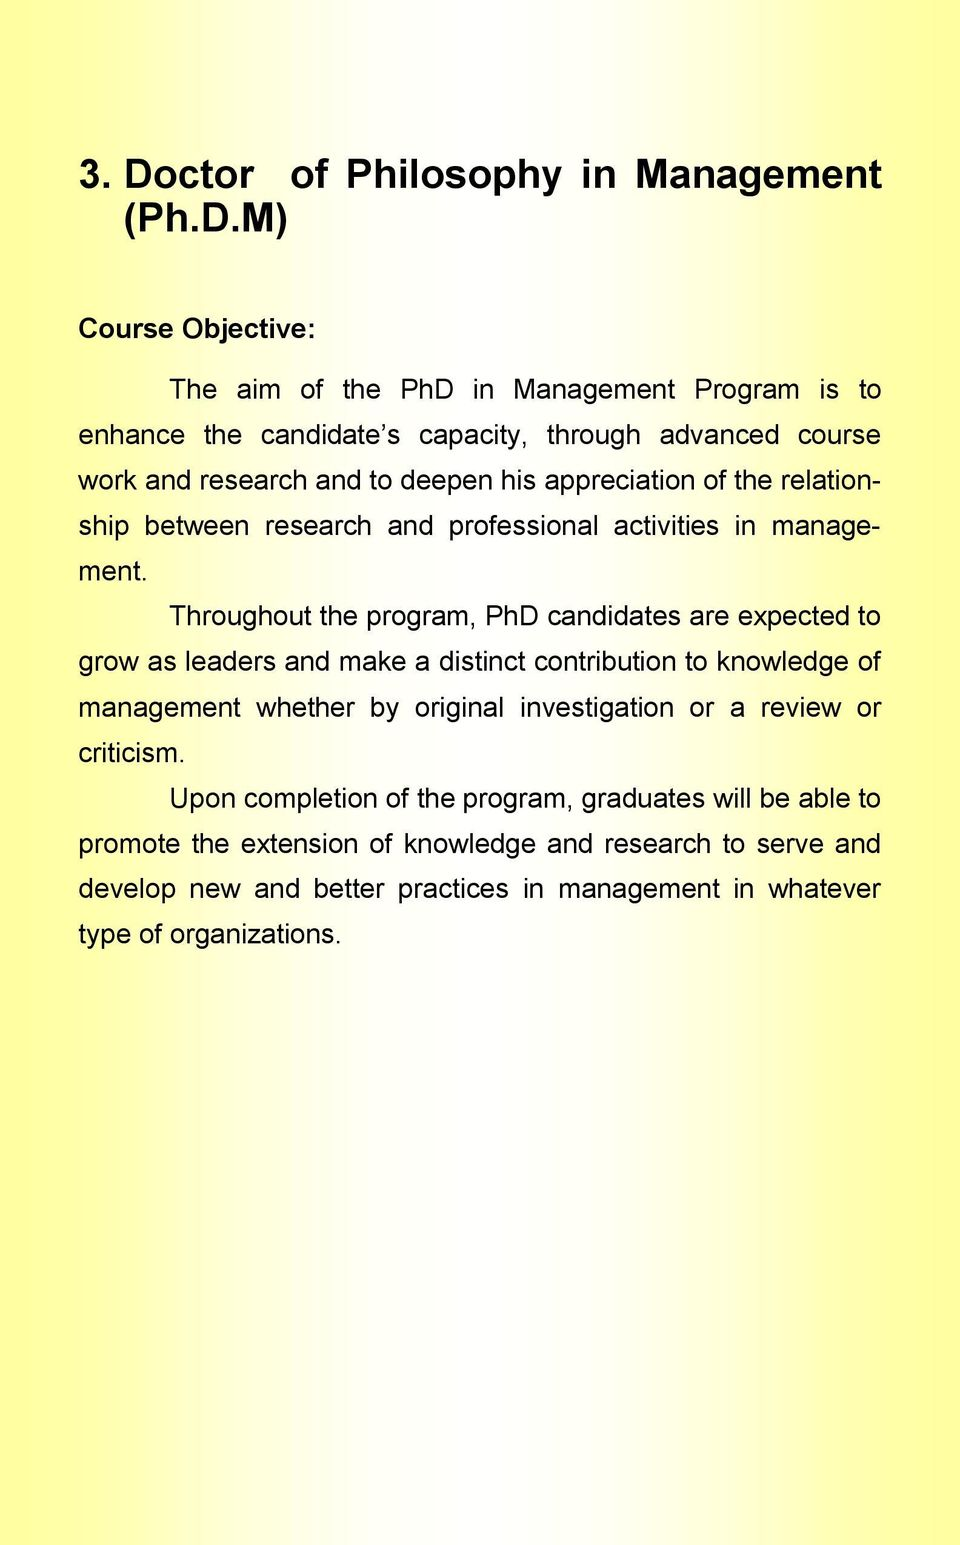 Throughout the program, PhD candidates are expected to grow as leaders and make a distinct contribution to knowledge of management whether by original investigation or a